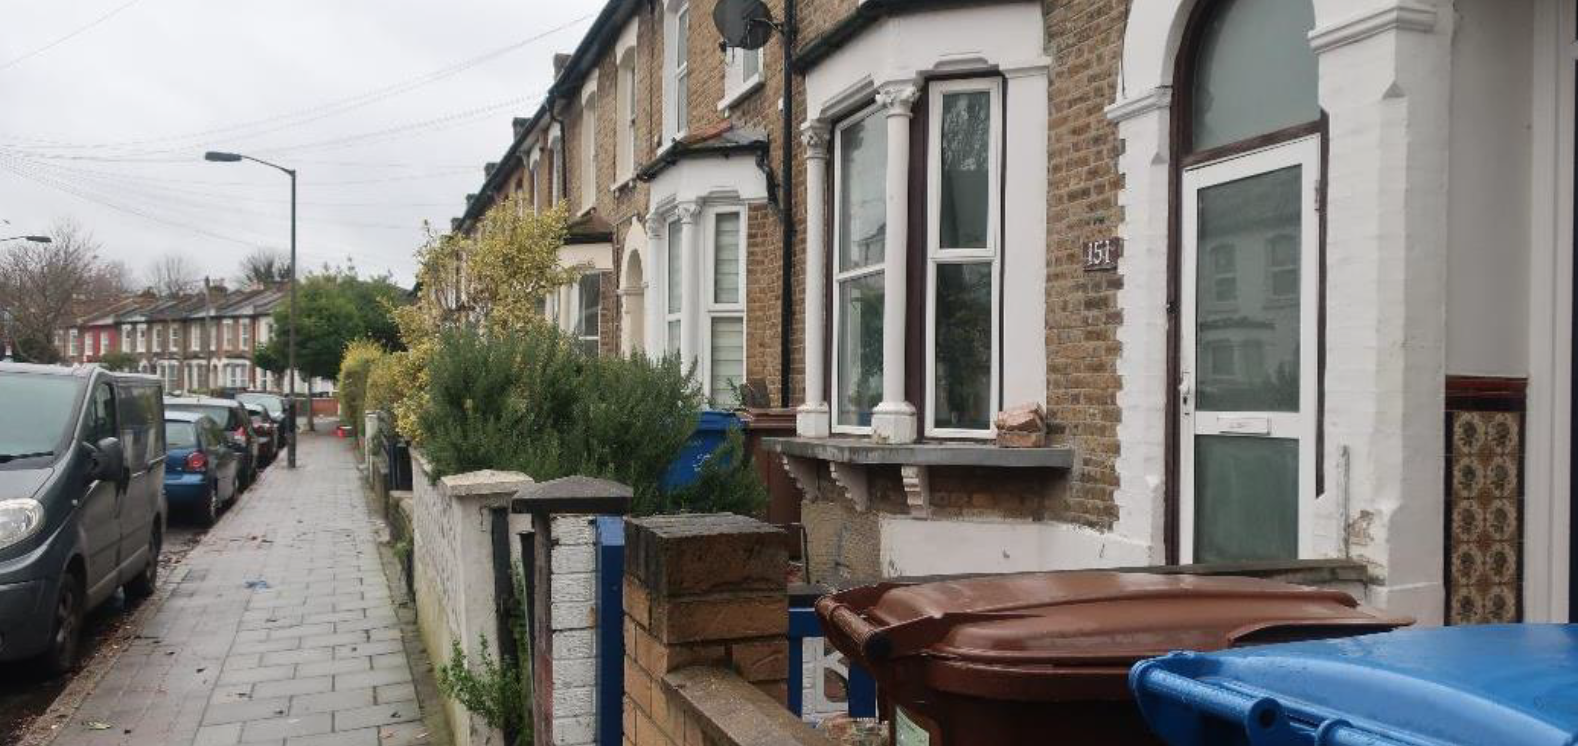 Recycling in London's HMOs featured image